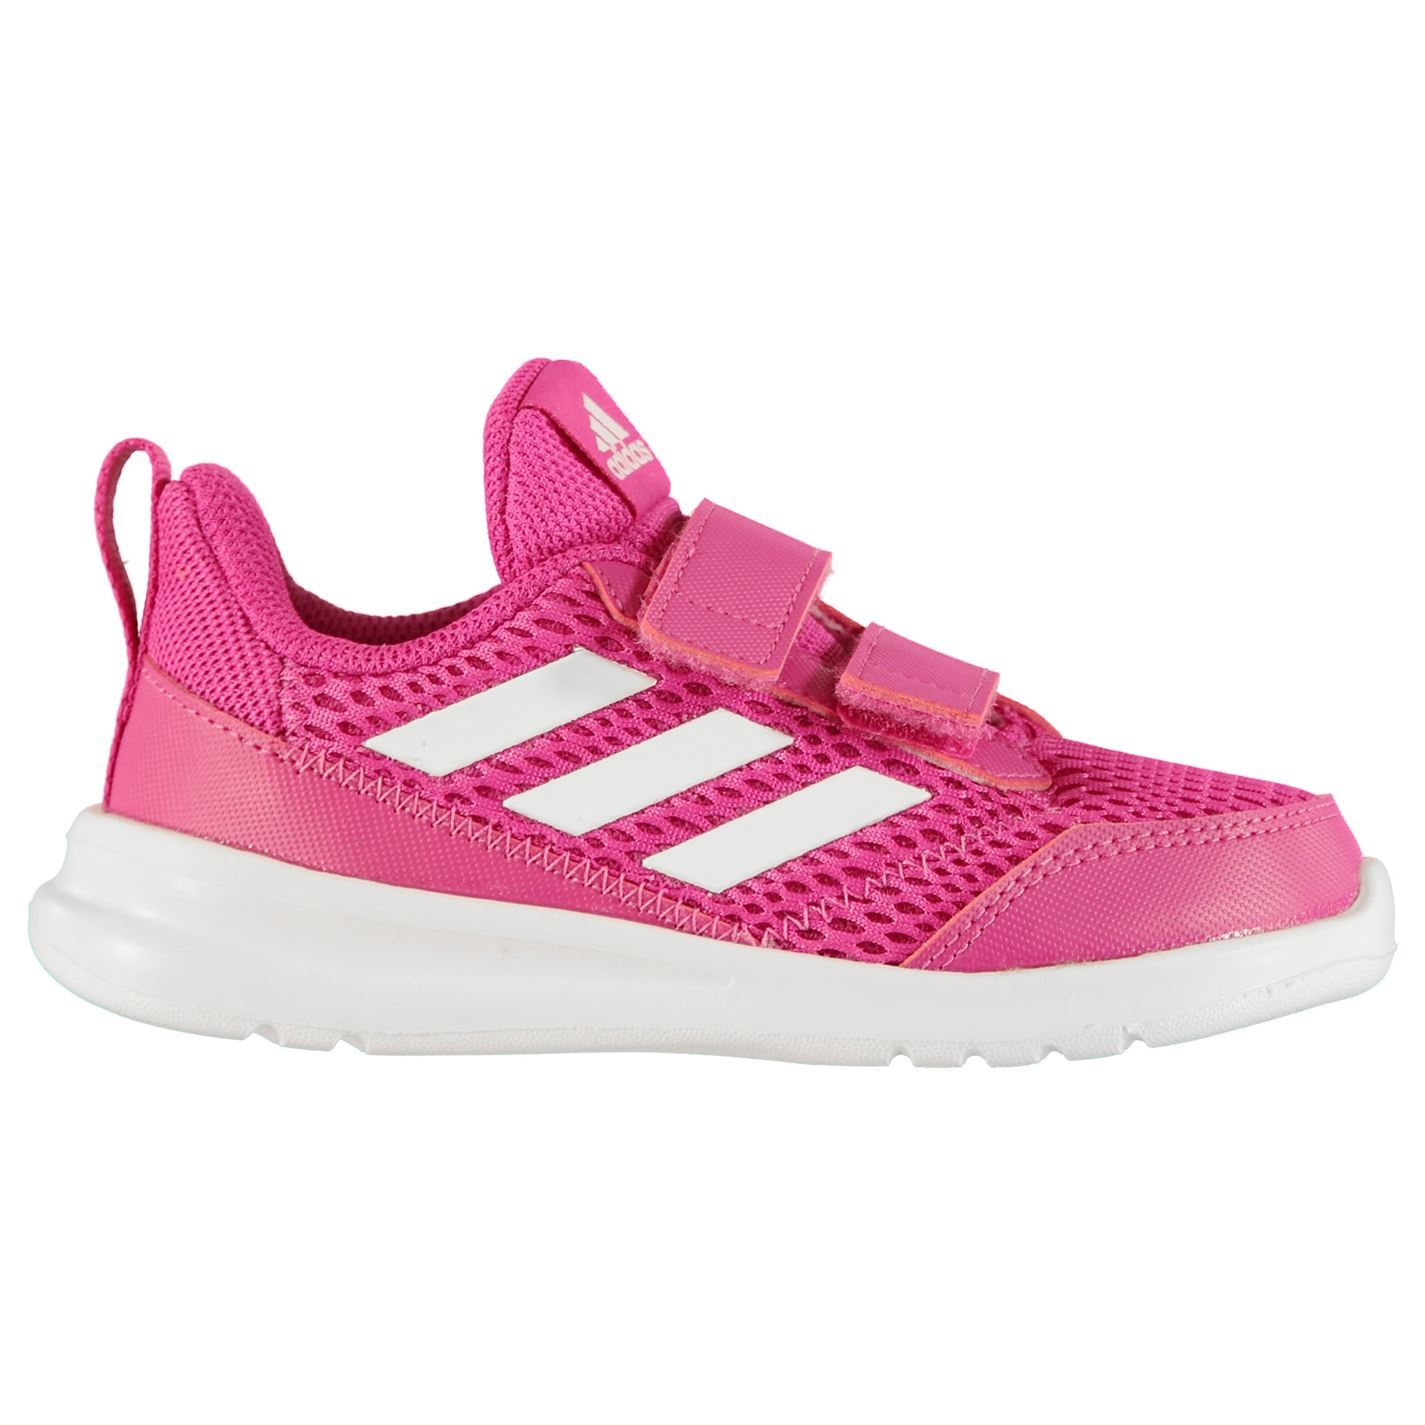 Details about adidas AltaRun Trainers Infants Girls PinkWhite Shoes Sneakers Kids Footwear